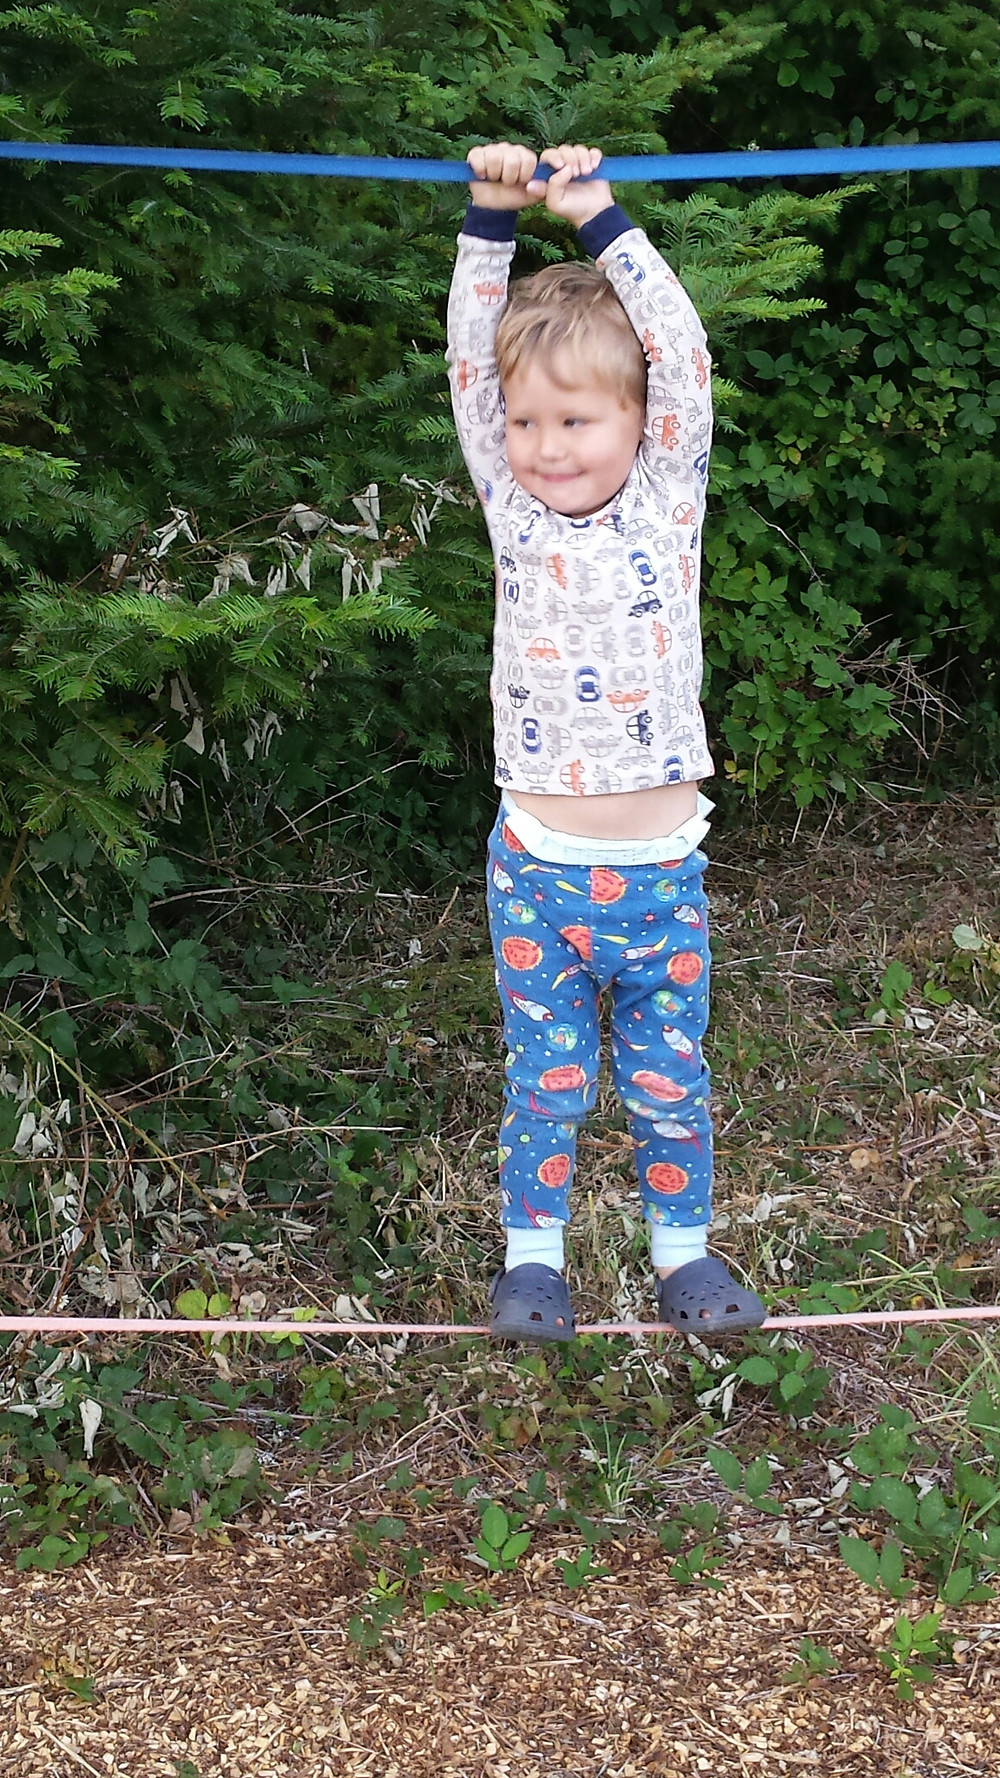 Why yes, we often take walks in our pj's